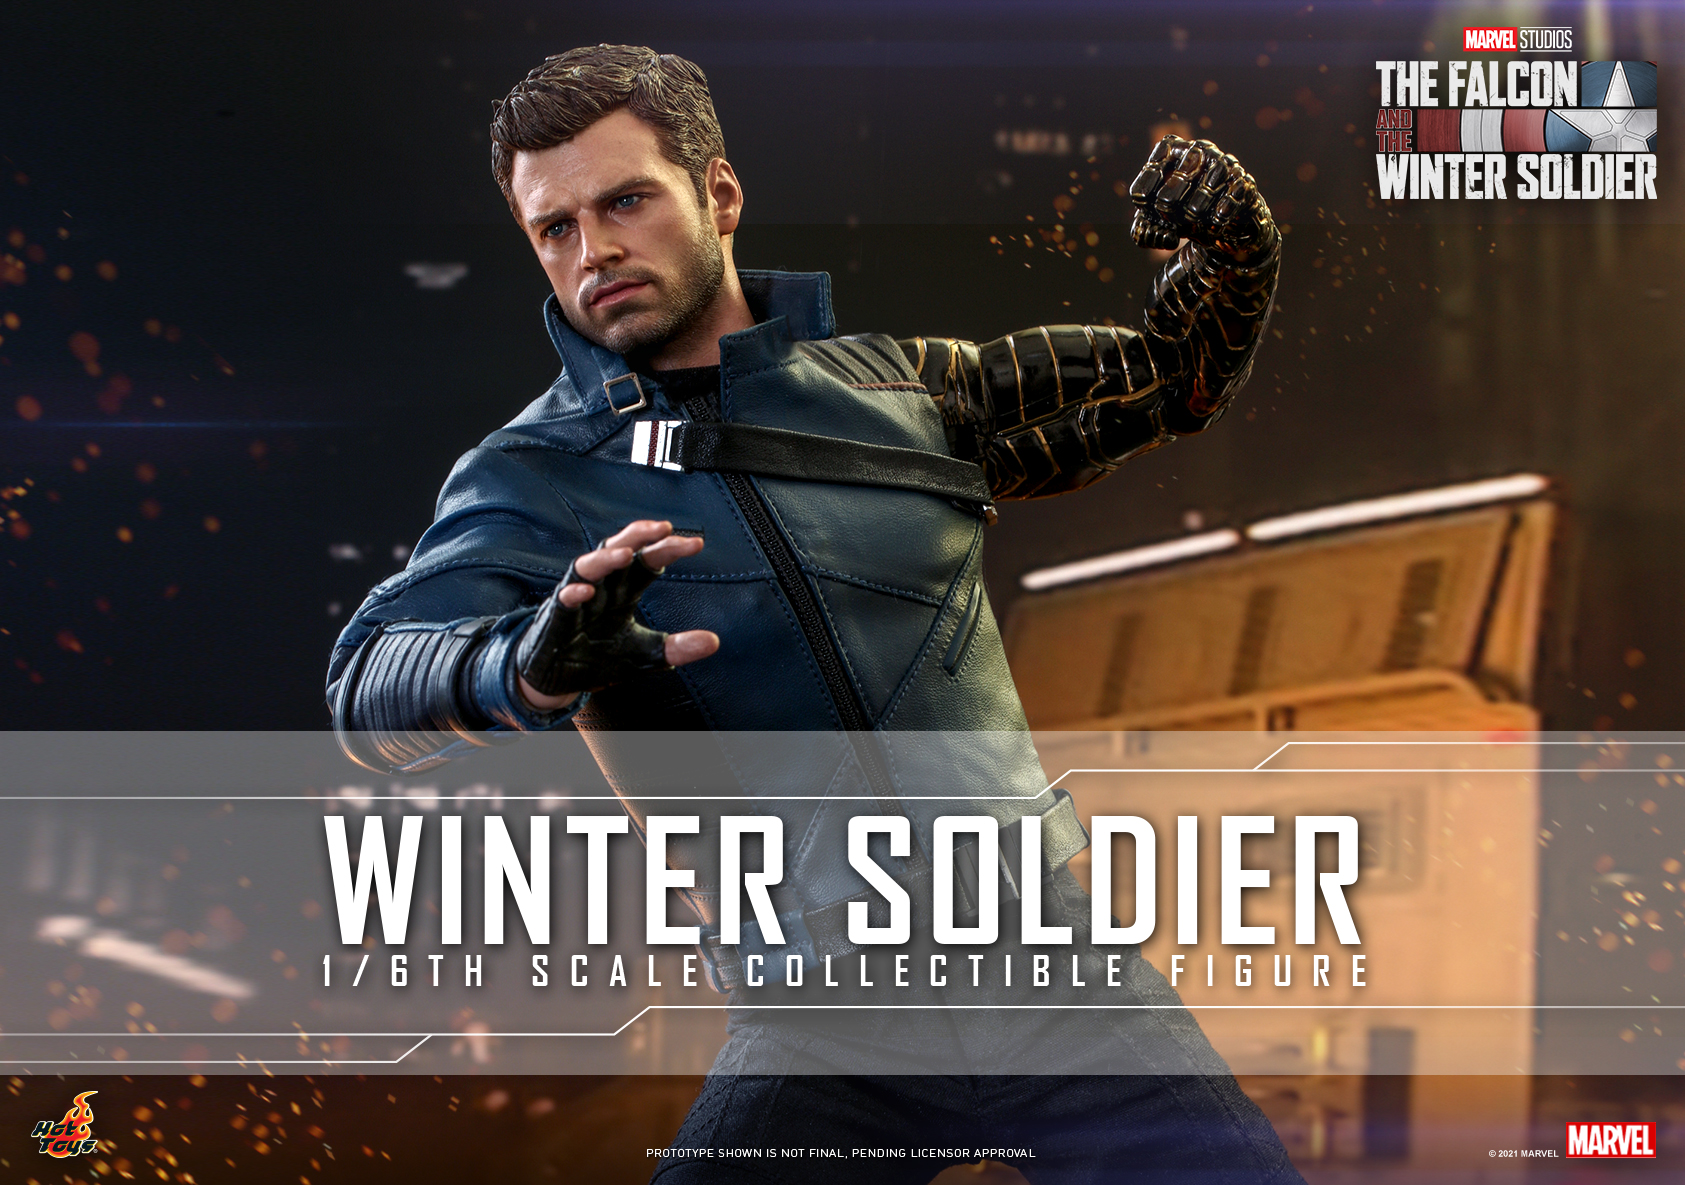 Hot Toys - Falcon and Winter Soldier - Winter Soldier collectible figure_Poster